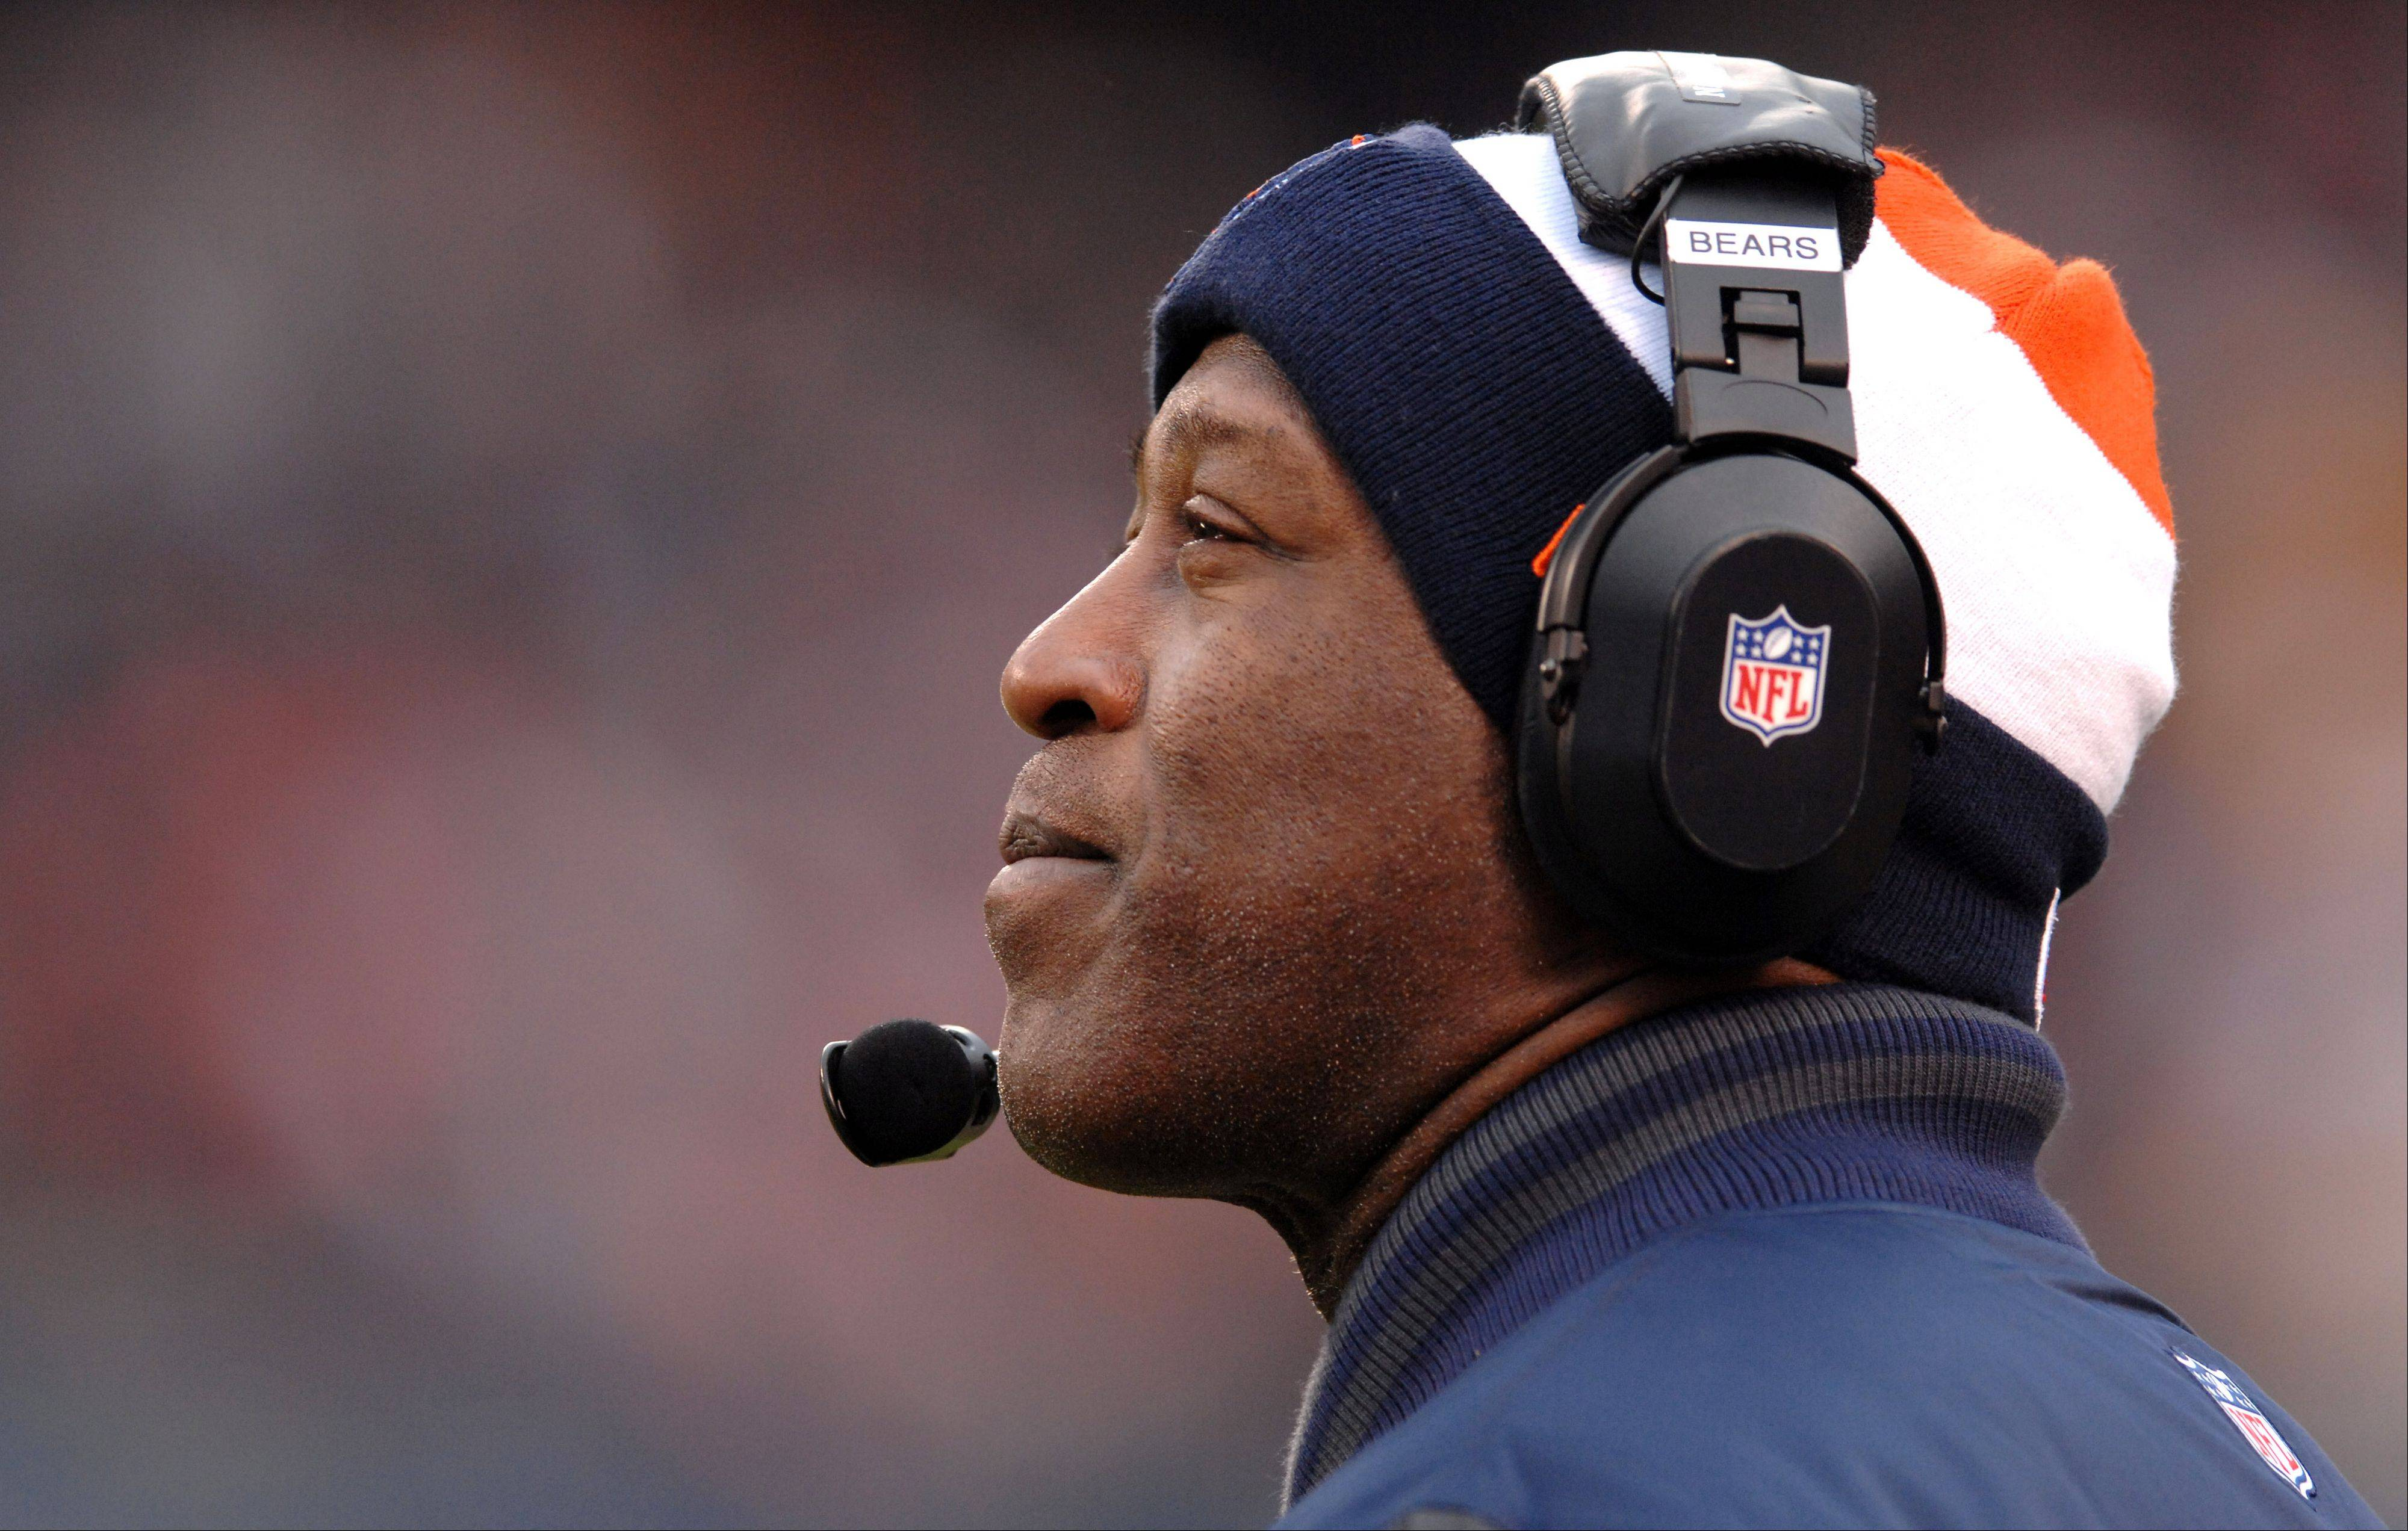 Chicago Bears head coach Lovie Smith watches the action during Sunday's game at Soldier Field in Chicago.